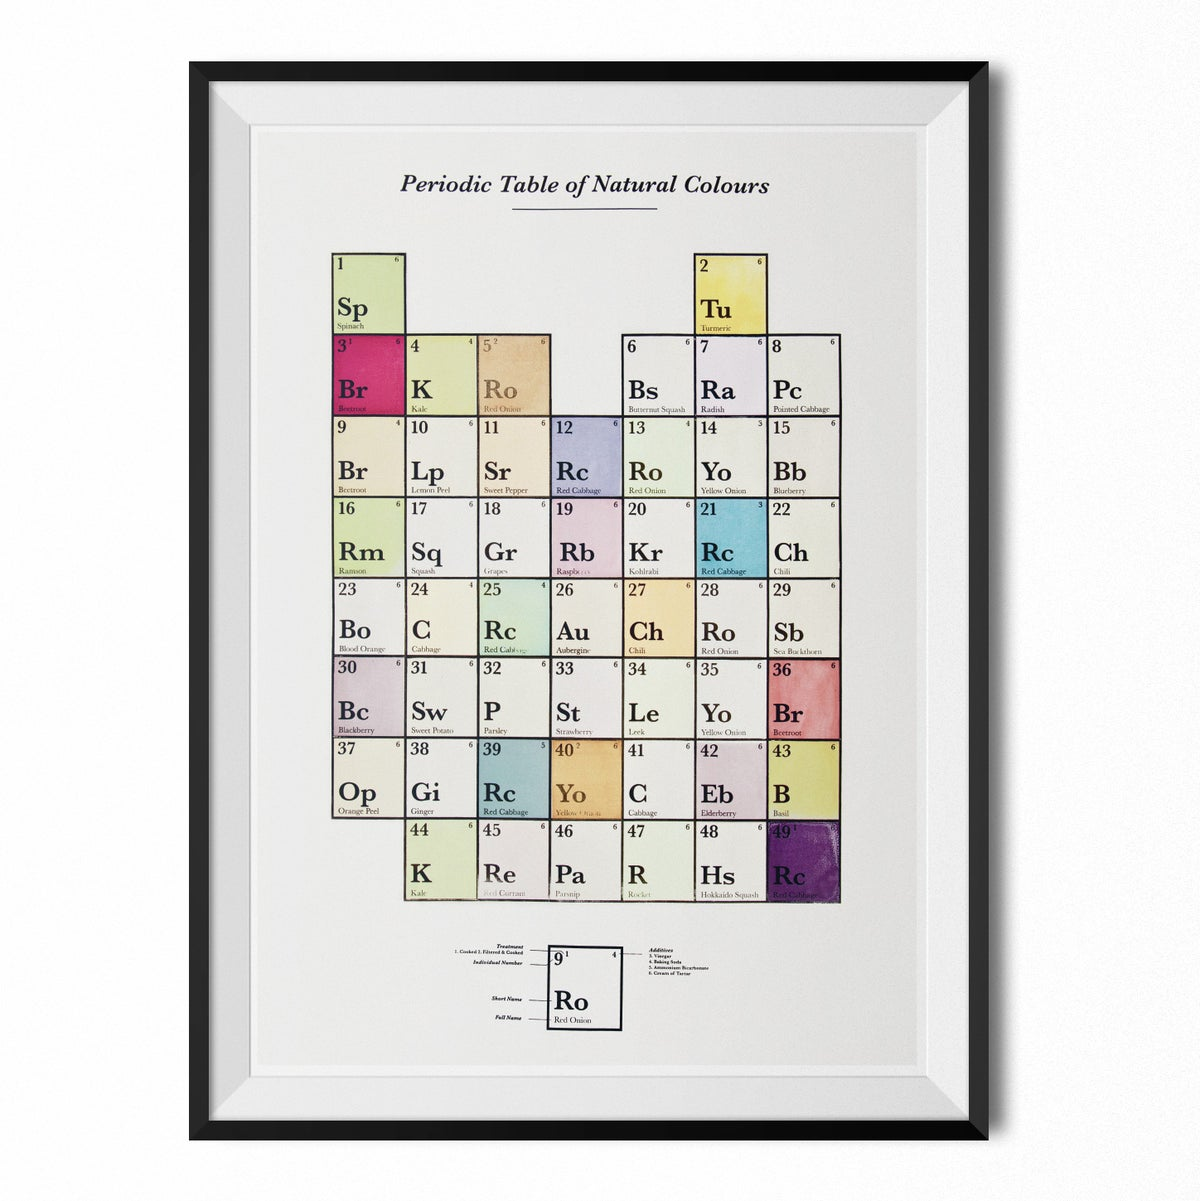 Image of Periodic table of natural colours